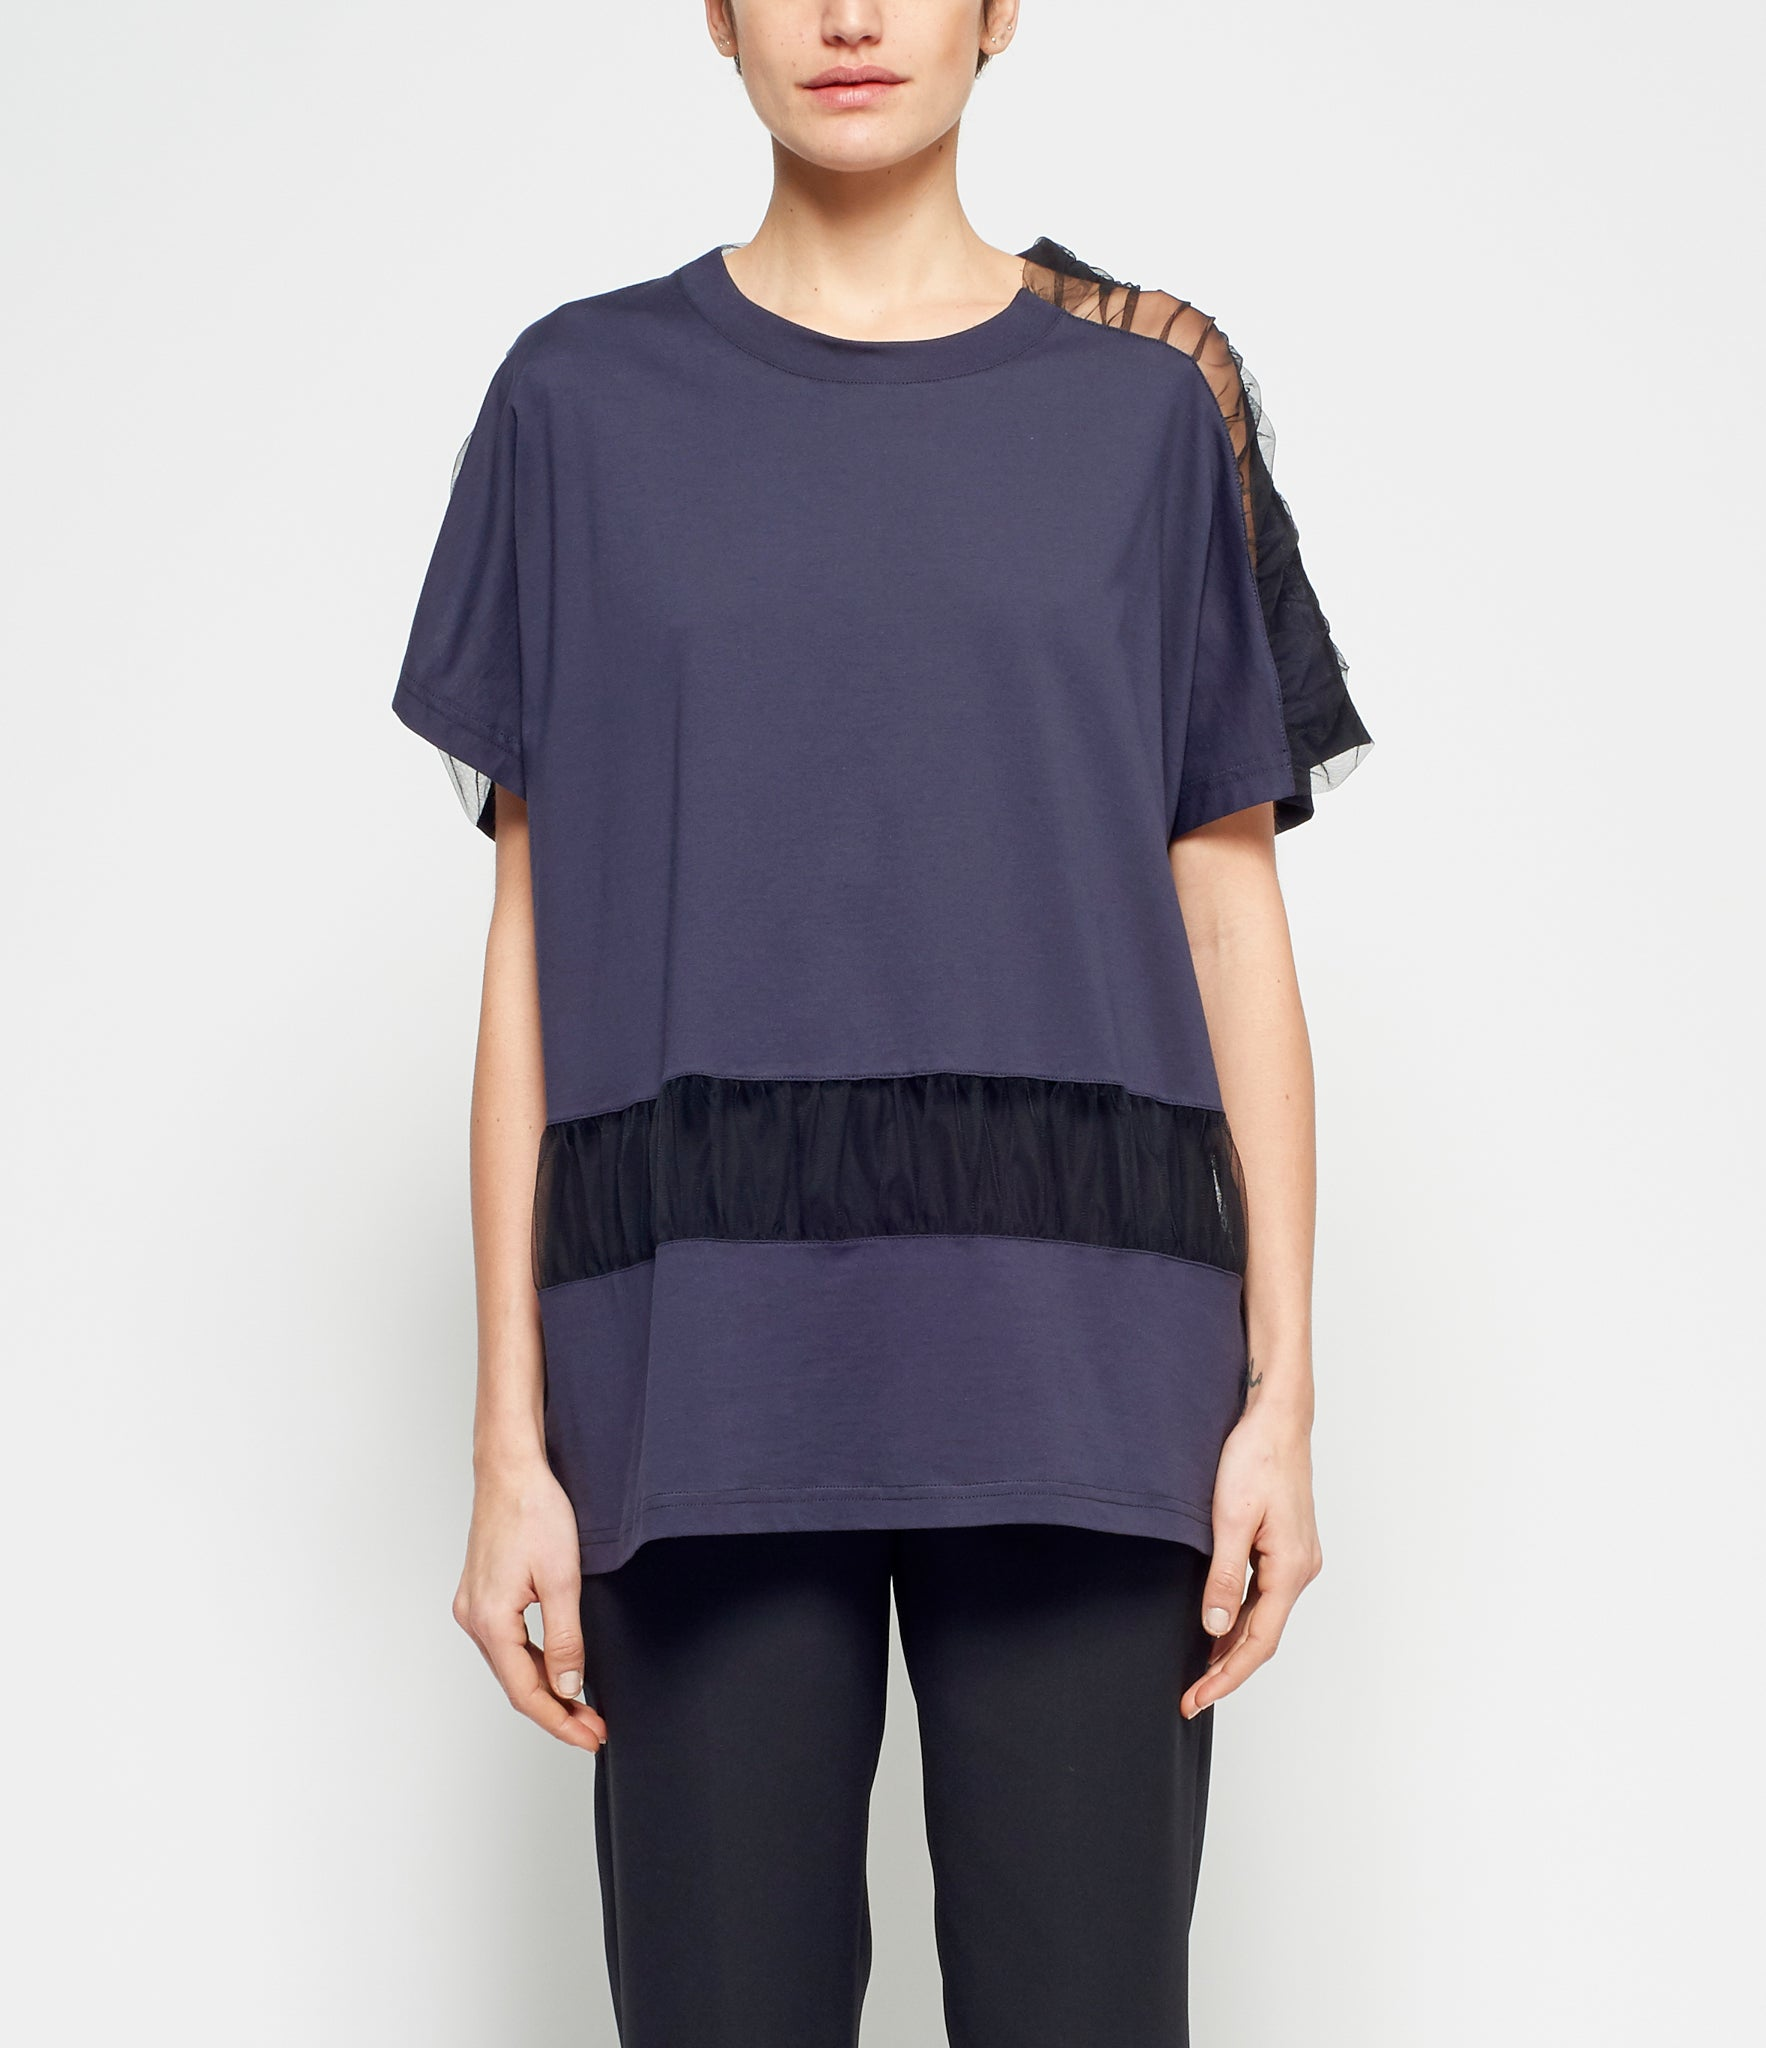 Maison Margiela Ruched Panel Top